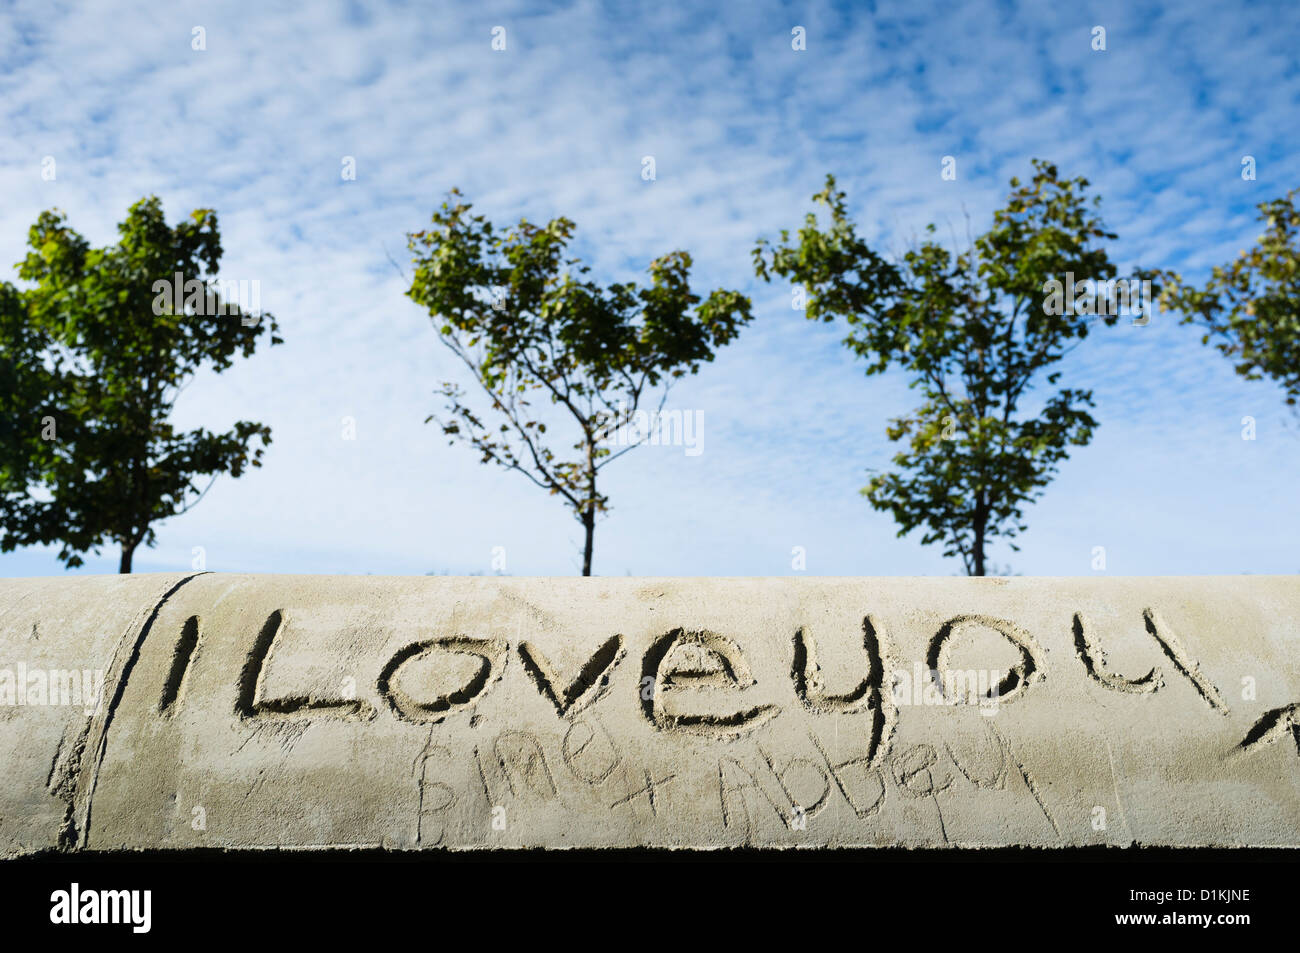 'I Love You' graffiti carved into a concrete wall, UK - Stock Image